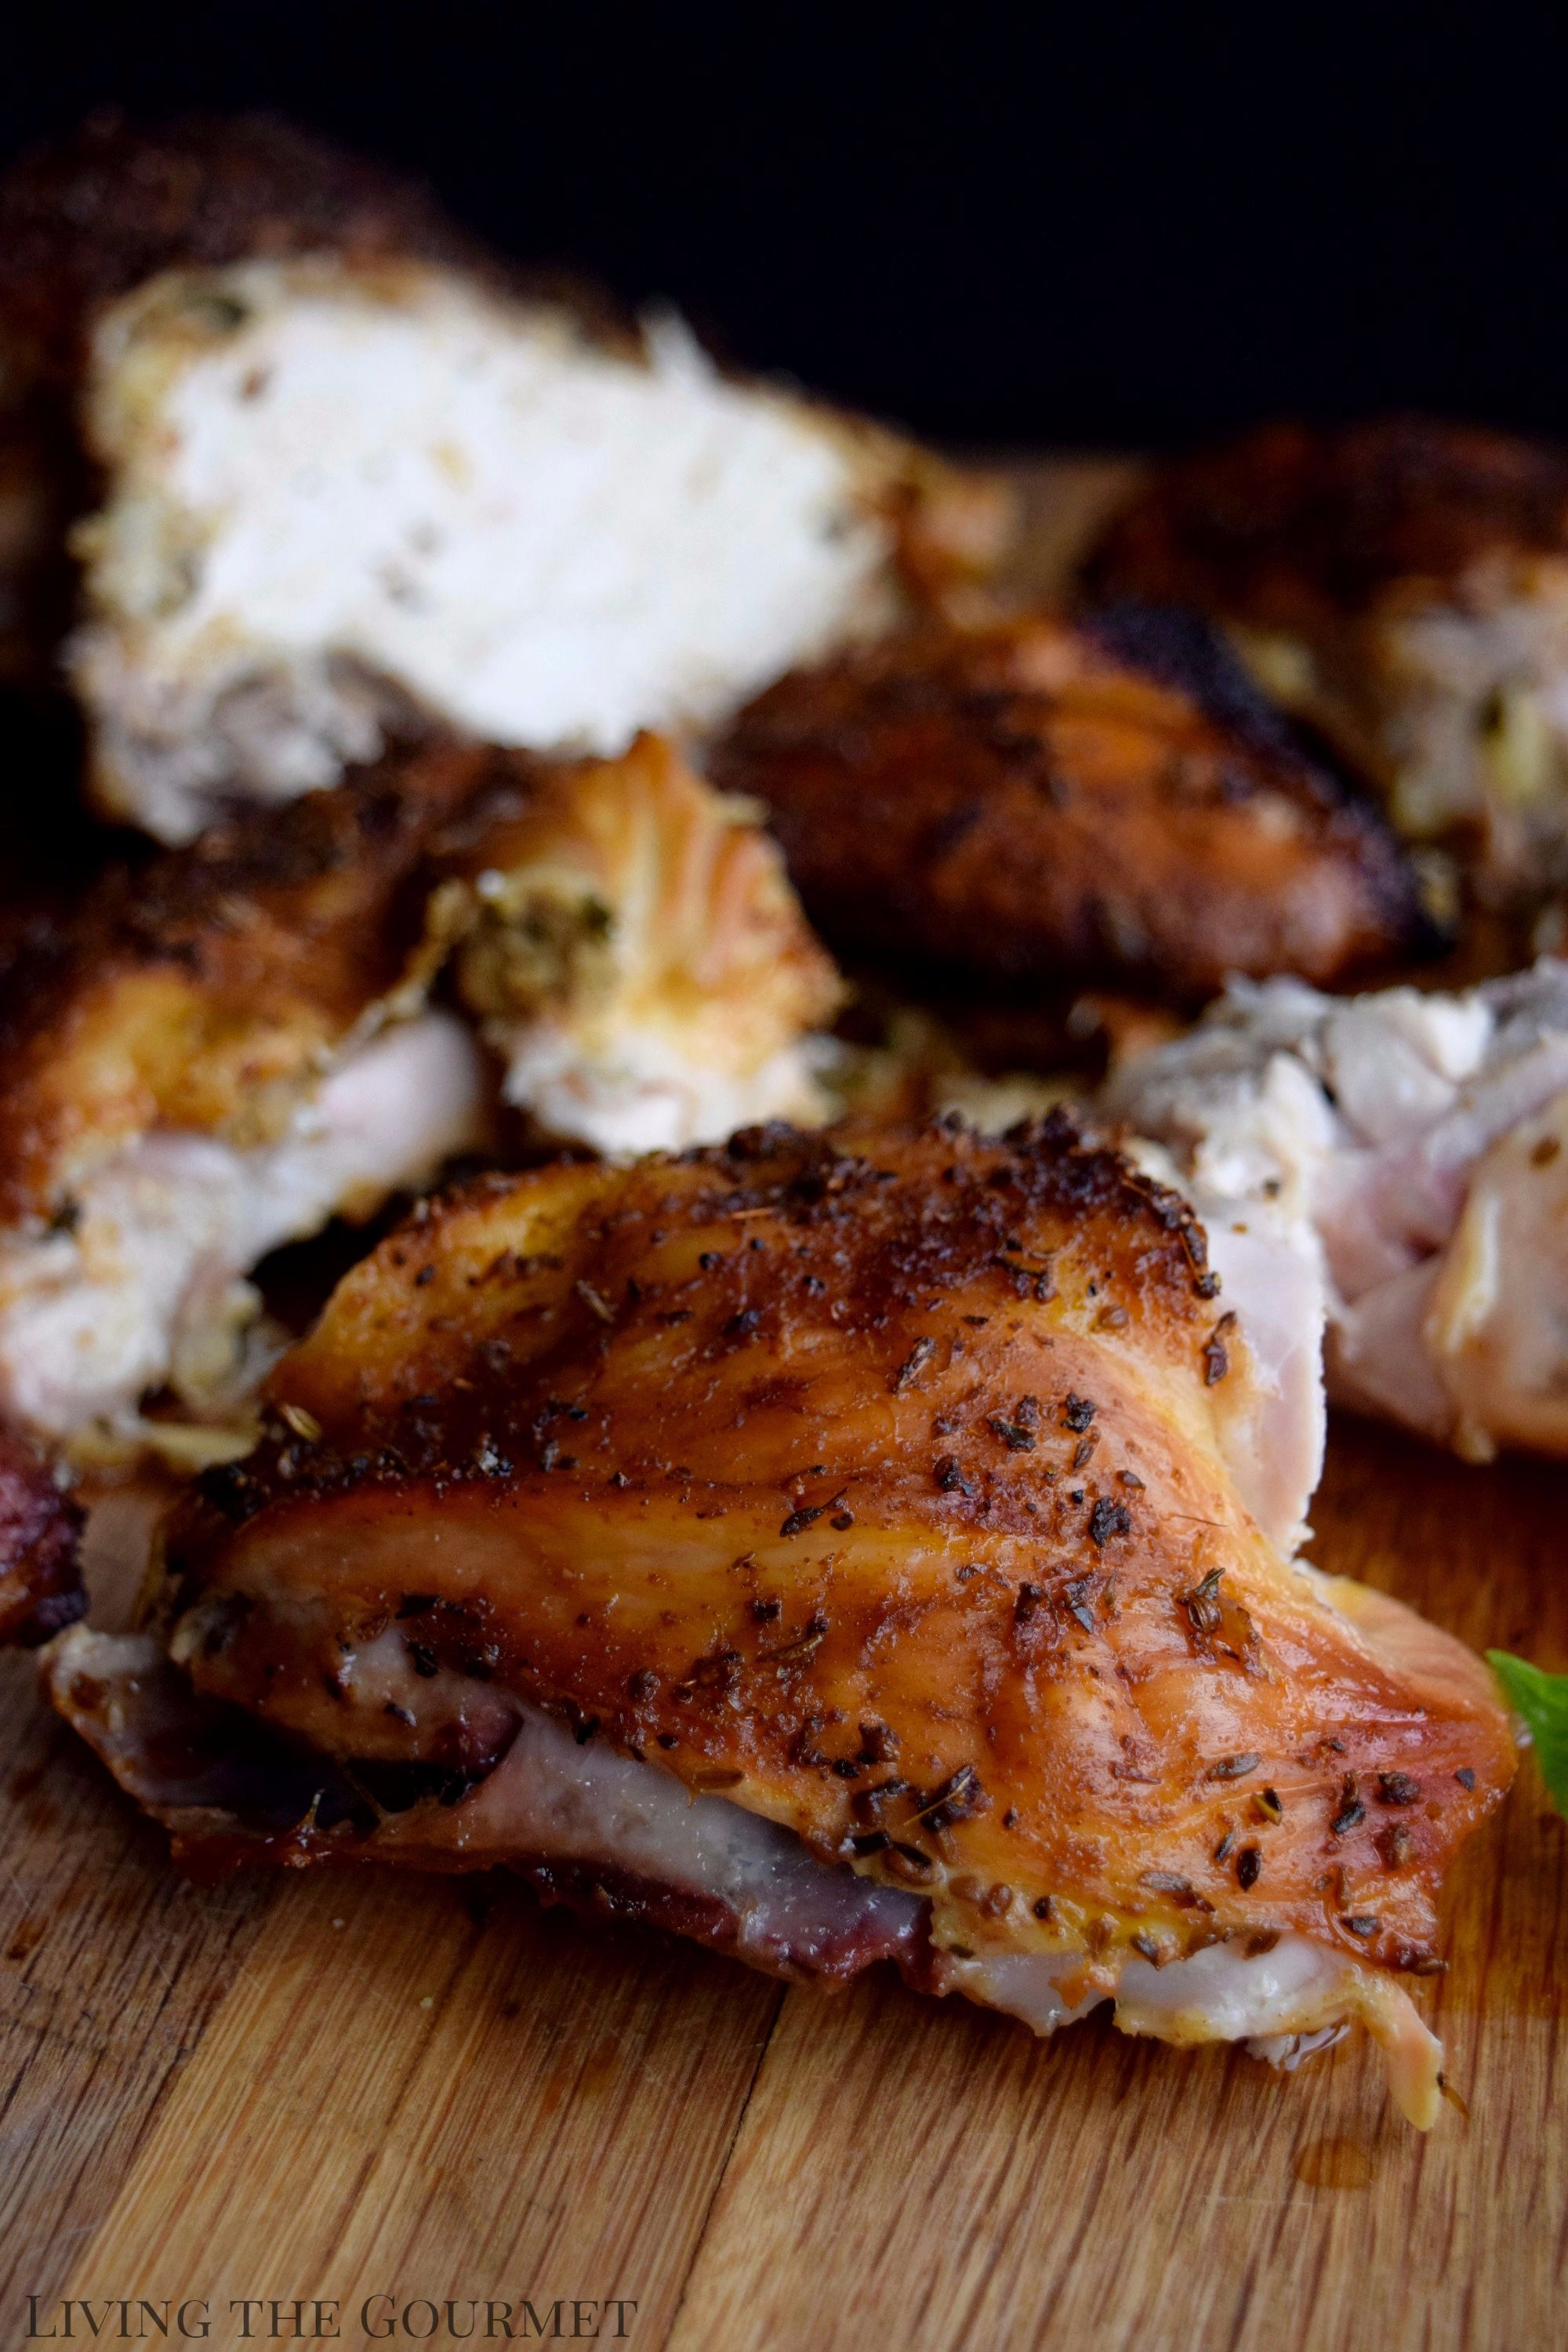 Living the Gourmet: Spatchcocked Chicken is a simple technique that will guarantee a perfectly cooked chicken throughout. Grill it up on the BBQ for a delicious and easy meal.